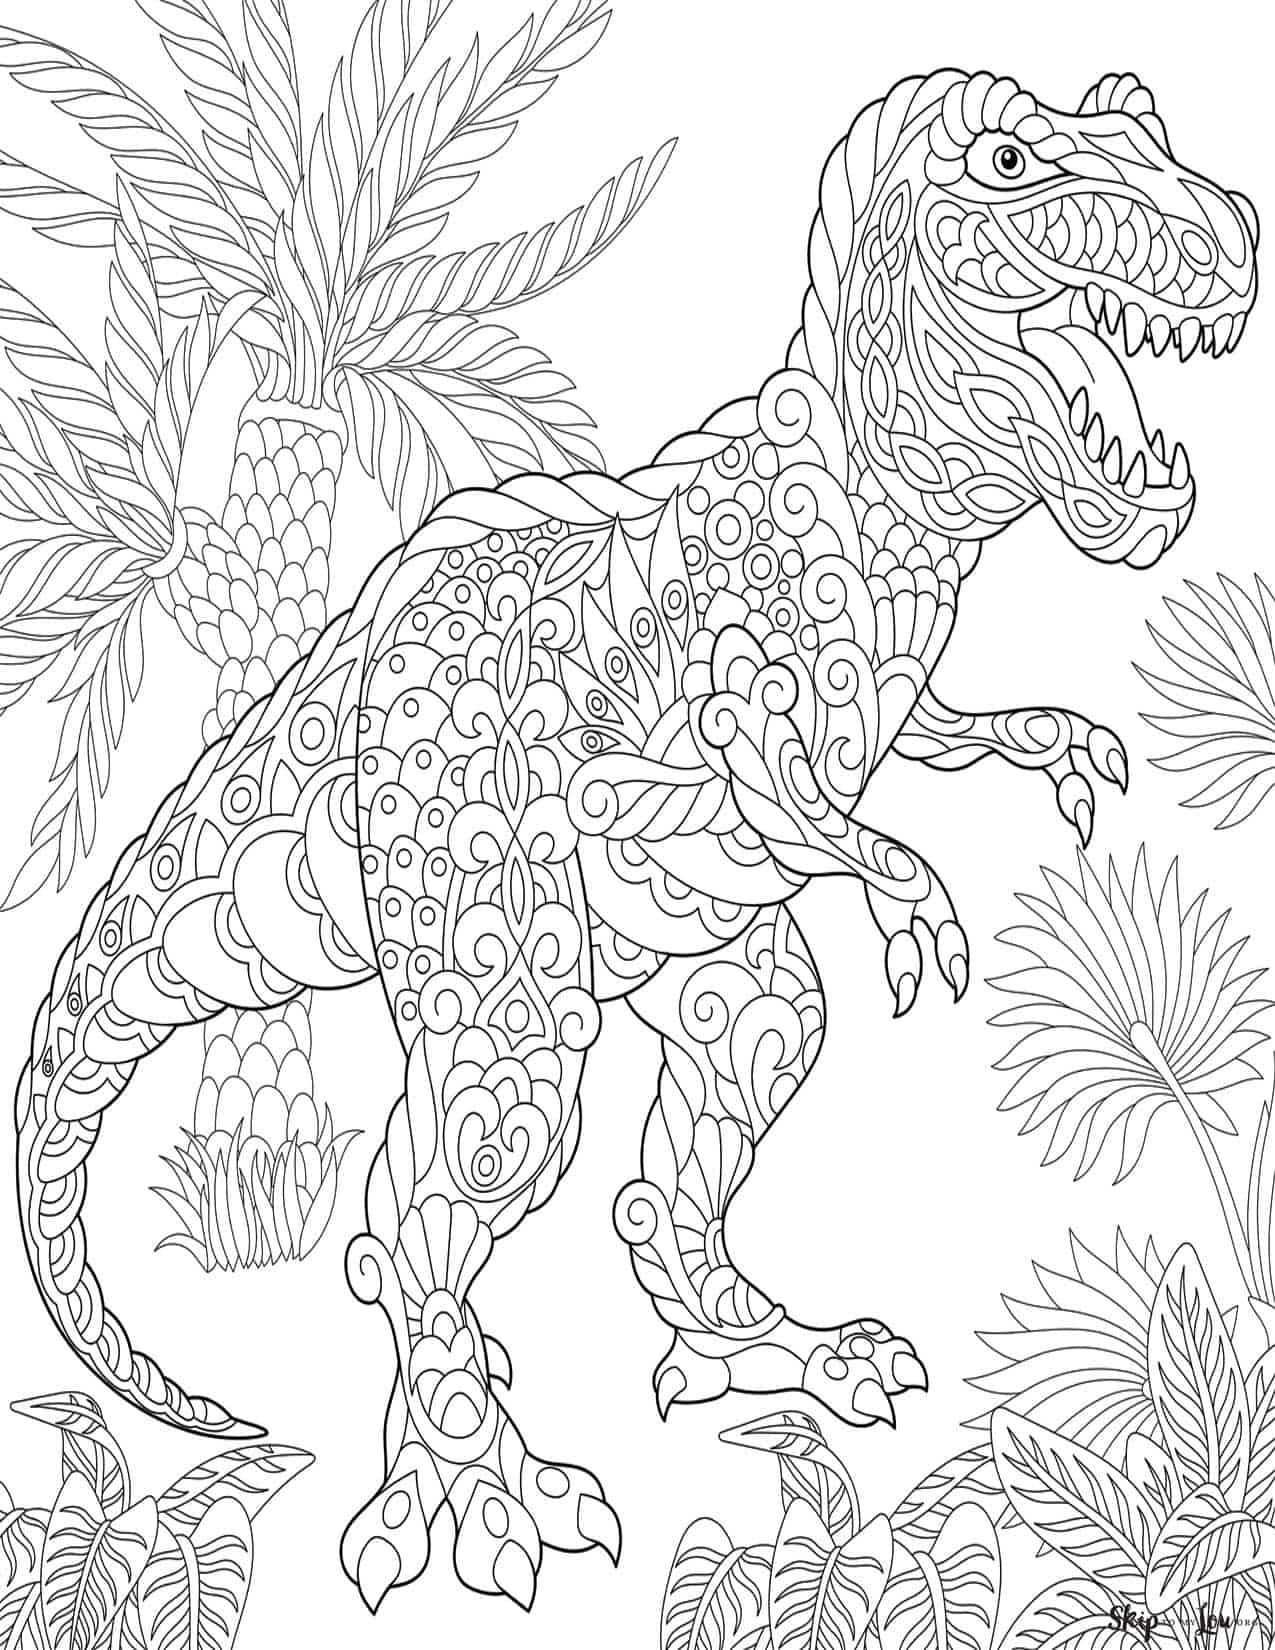 dinosaur print out coloring pages coloring pages dinosaur free printable coloring pages pages coloring dinosaur out print